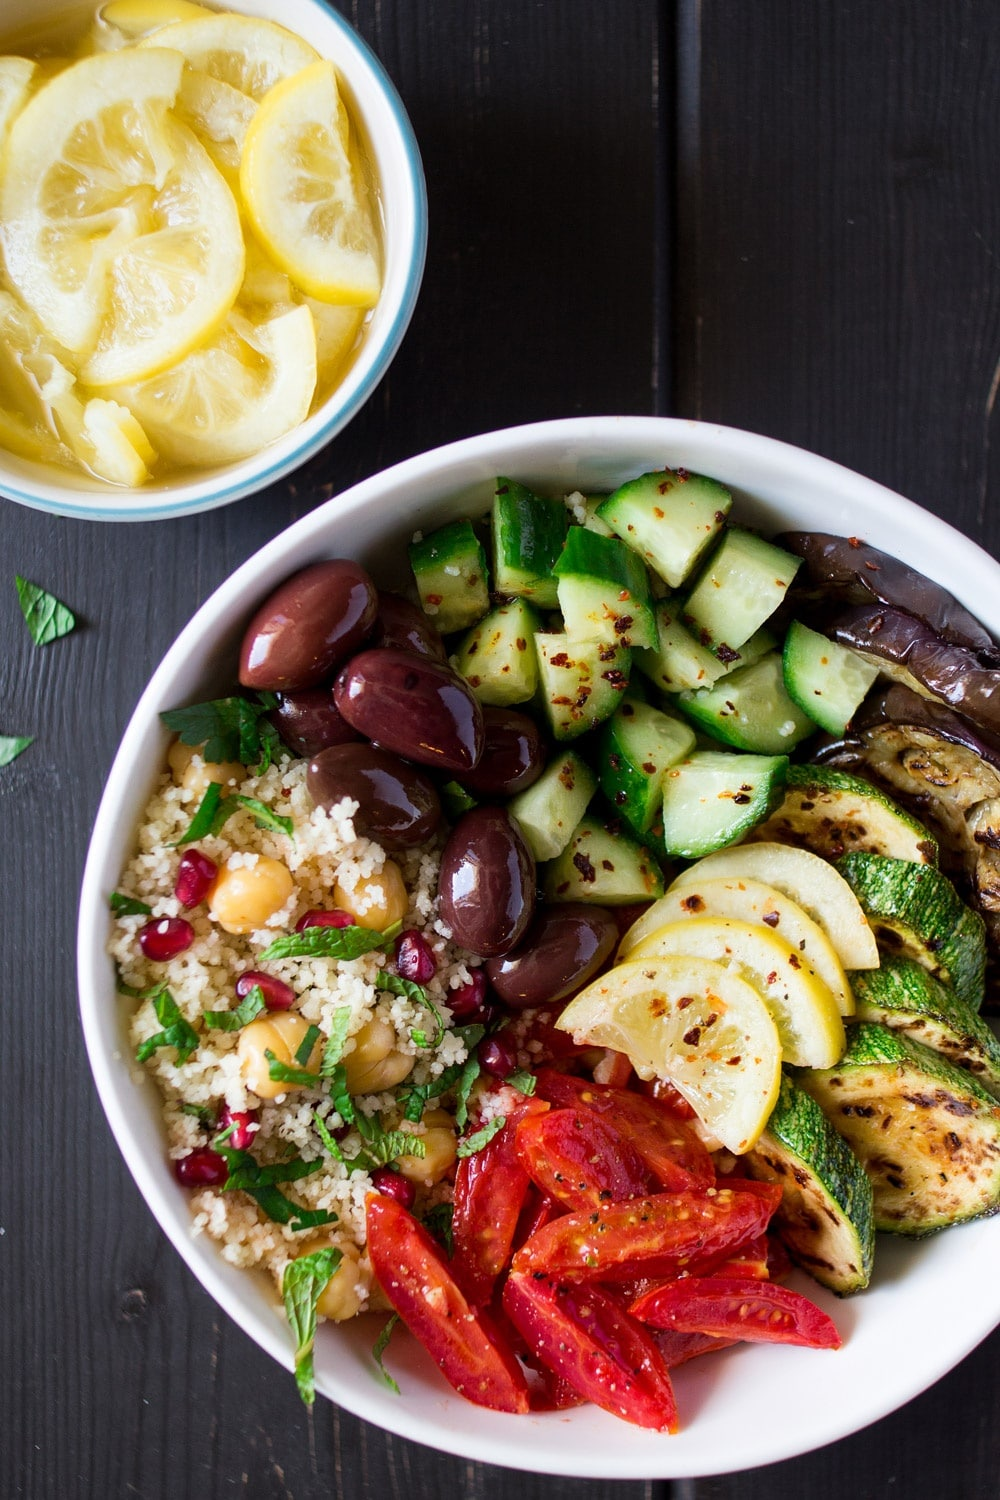 55 vegan bowl recipes to make for dinner connoisseurus veg 55 vegan bowl recipes to make for dinner forumfinder Choice Image